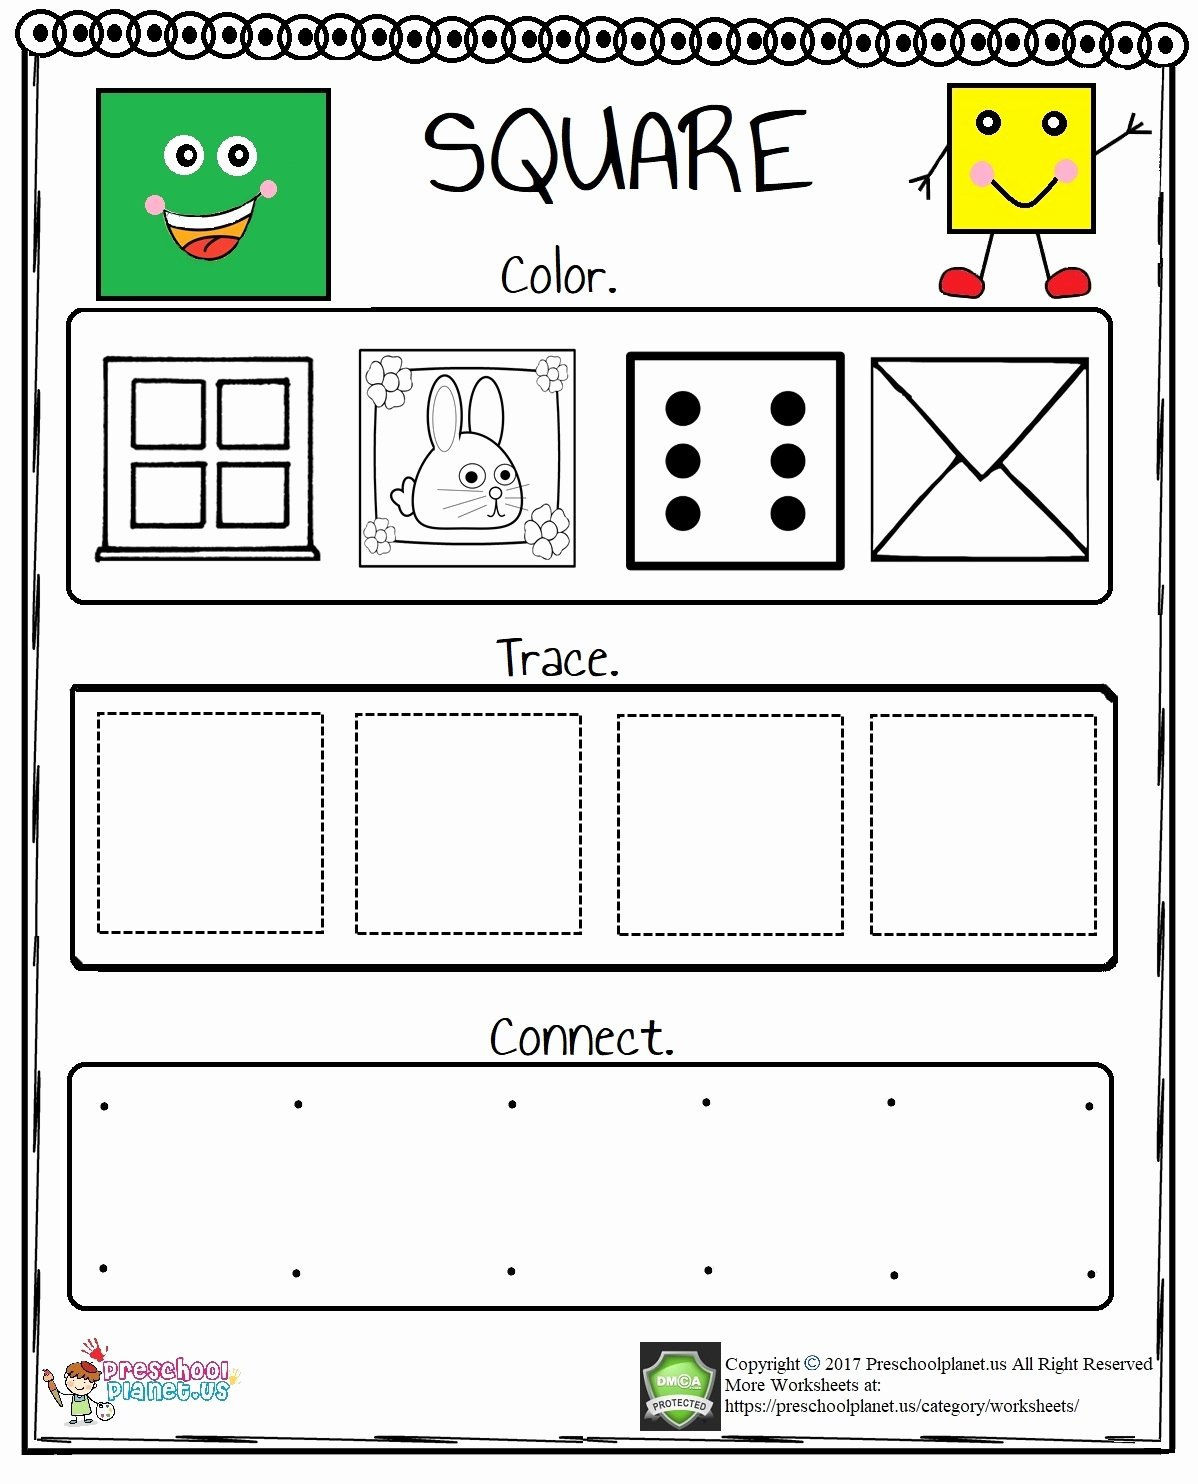 Square Worksheets for Preschoolers Lovely Square Worksheet for Preschool – Preschoolplanet